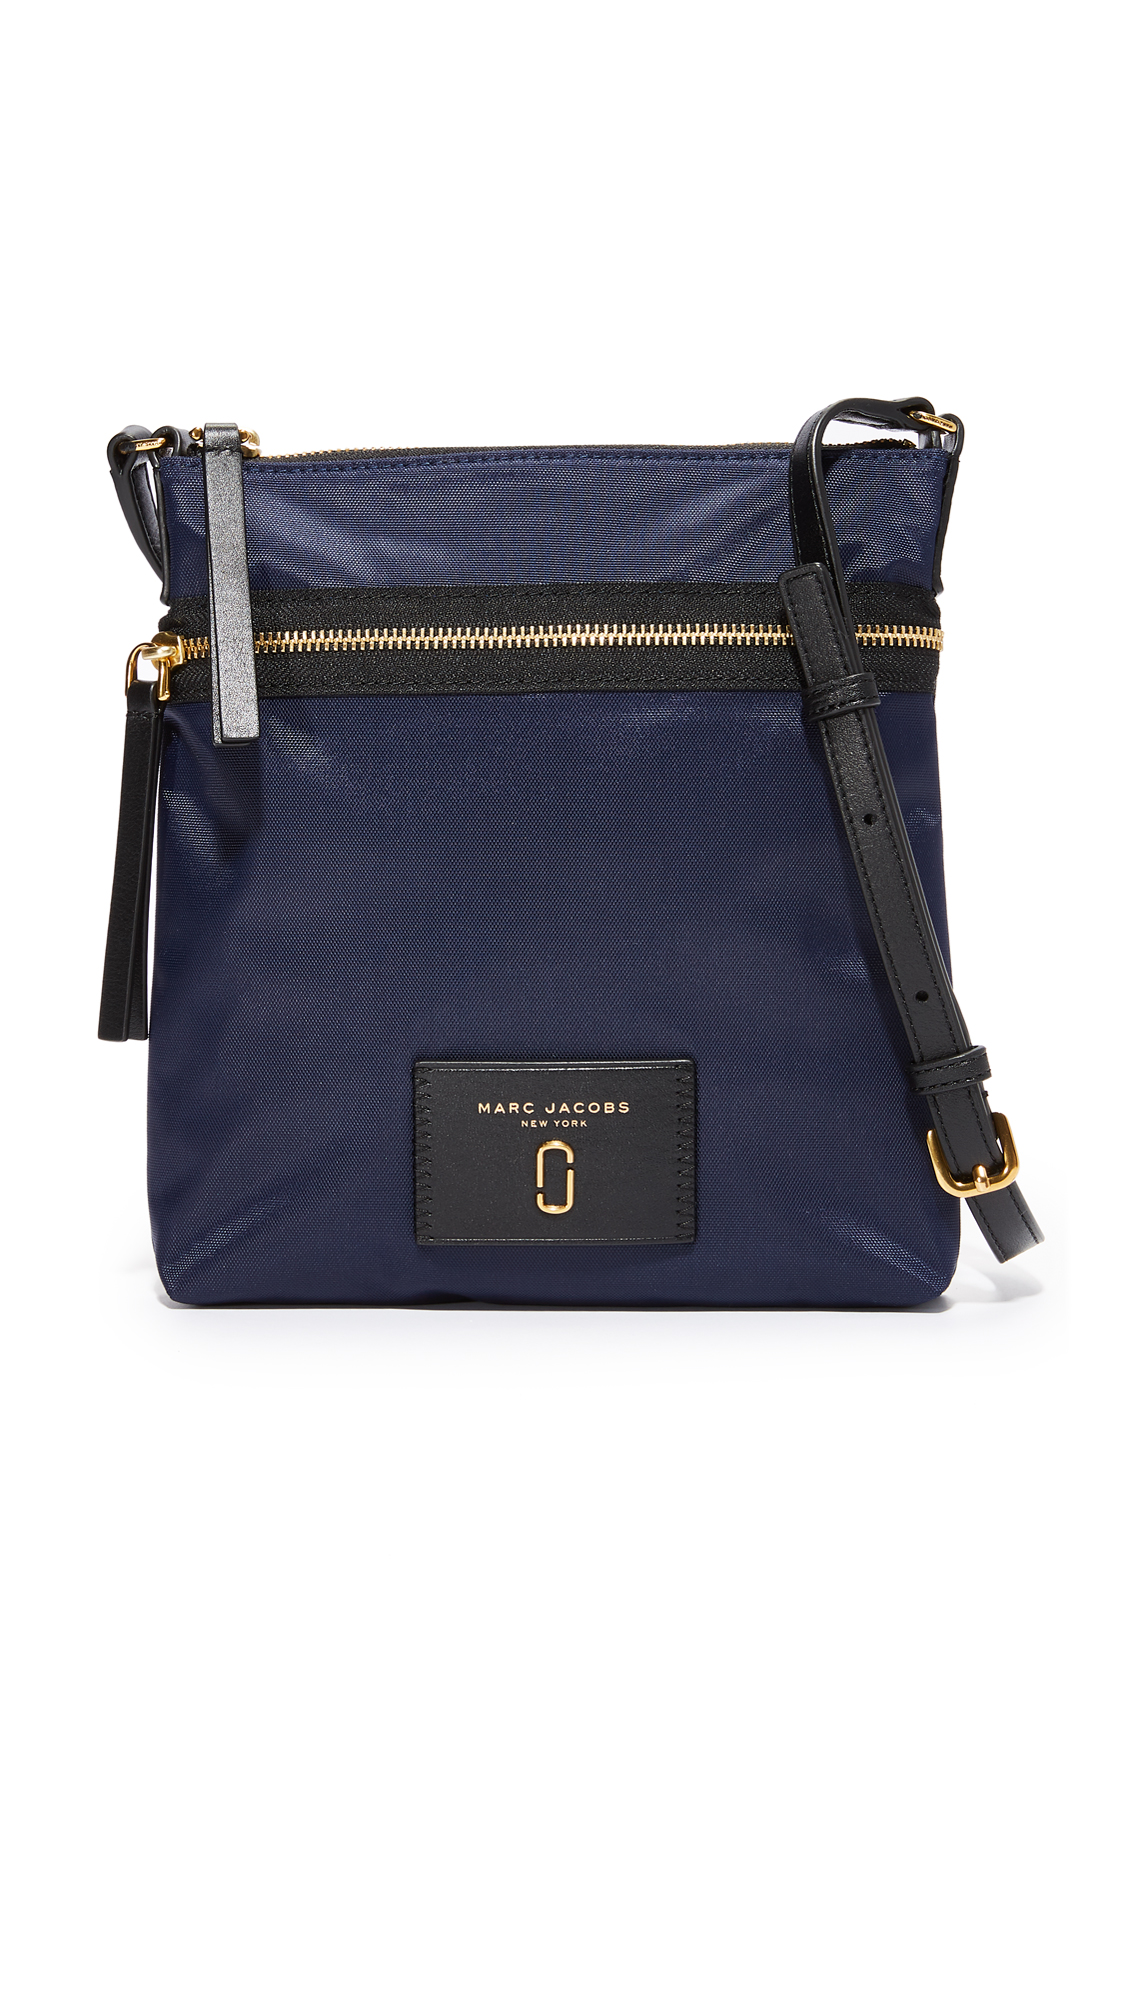 Marc Jacobs NS Cross Body Bag In Midnight